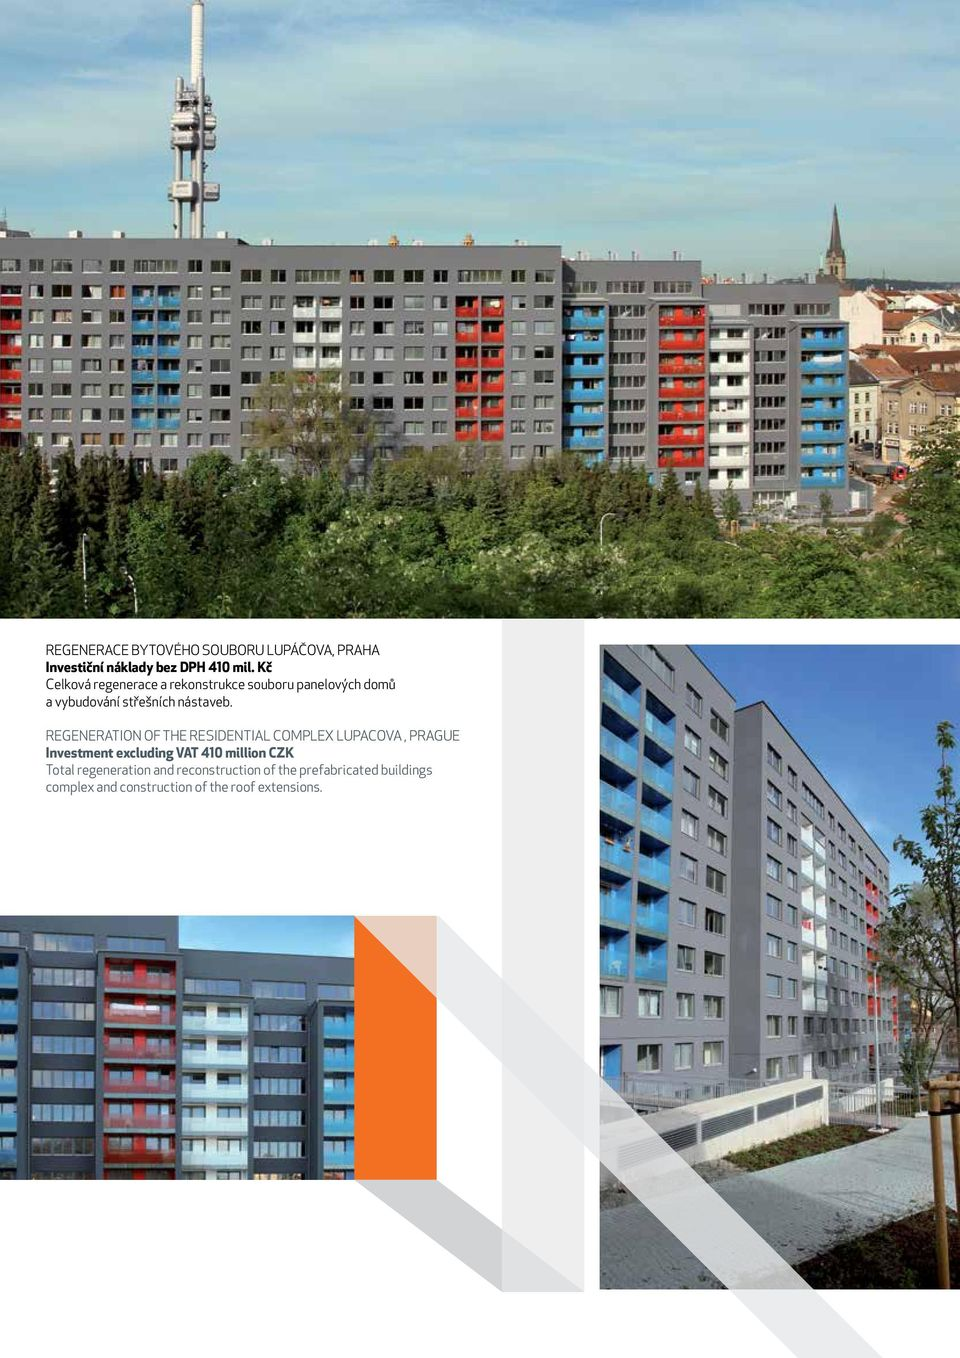 REGENERATION OF THE RESIDENTIAL COMPLEX LUPACOVA, PRAGUE Investment excluding VAT 410 million CZK